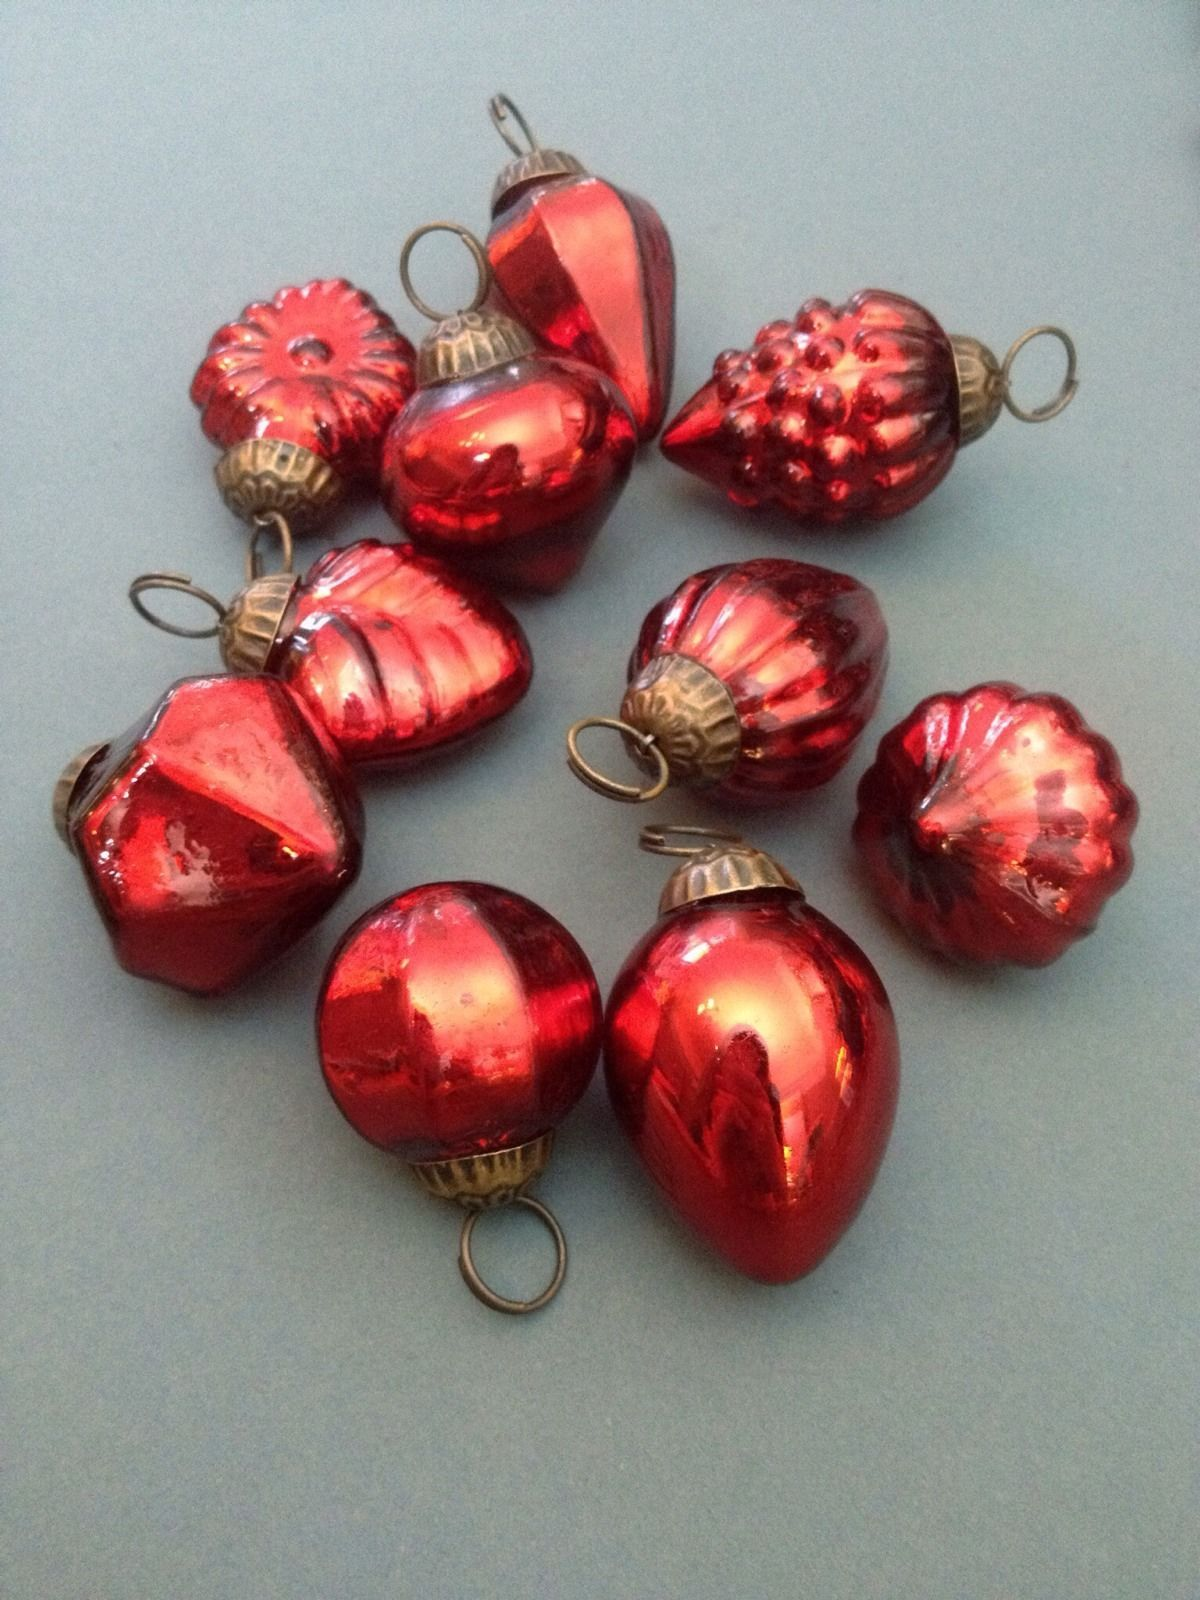 10 mini red glass baubles vintage metallic kugel style christmas decorations ebay - Ebay Christmas Decorations